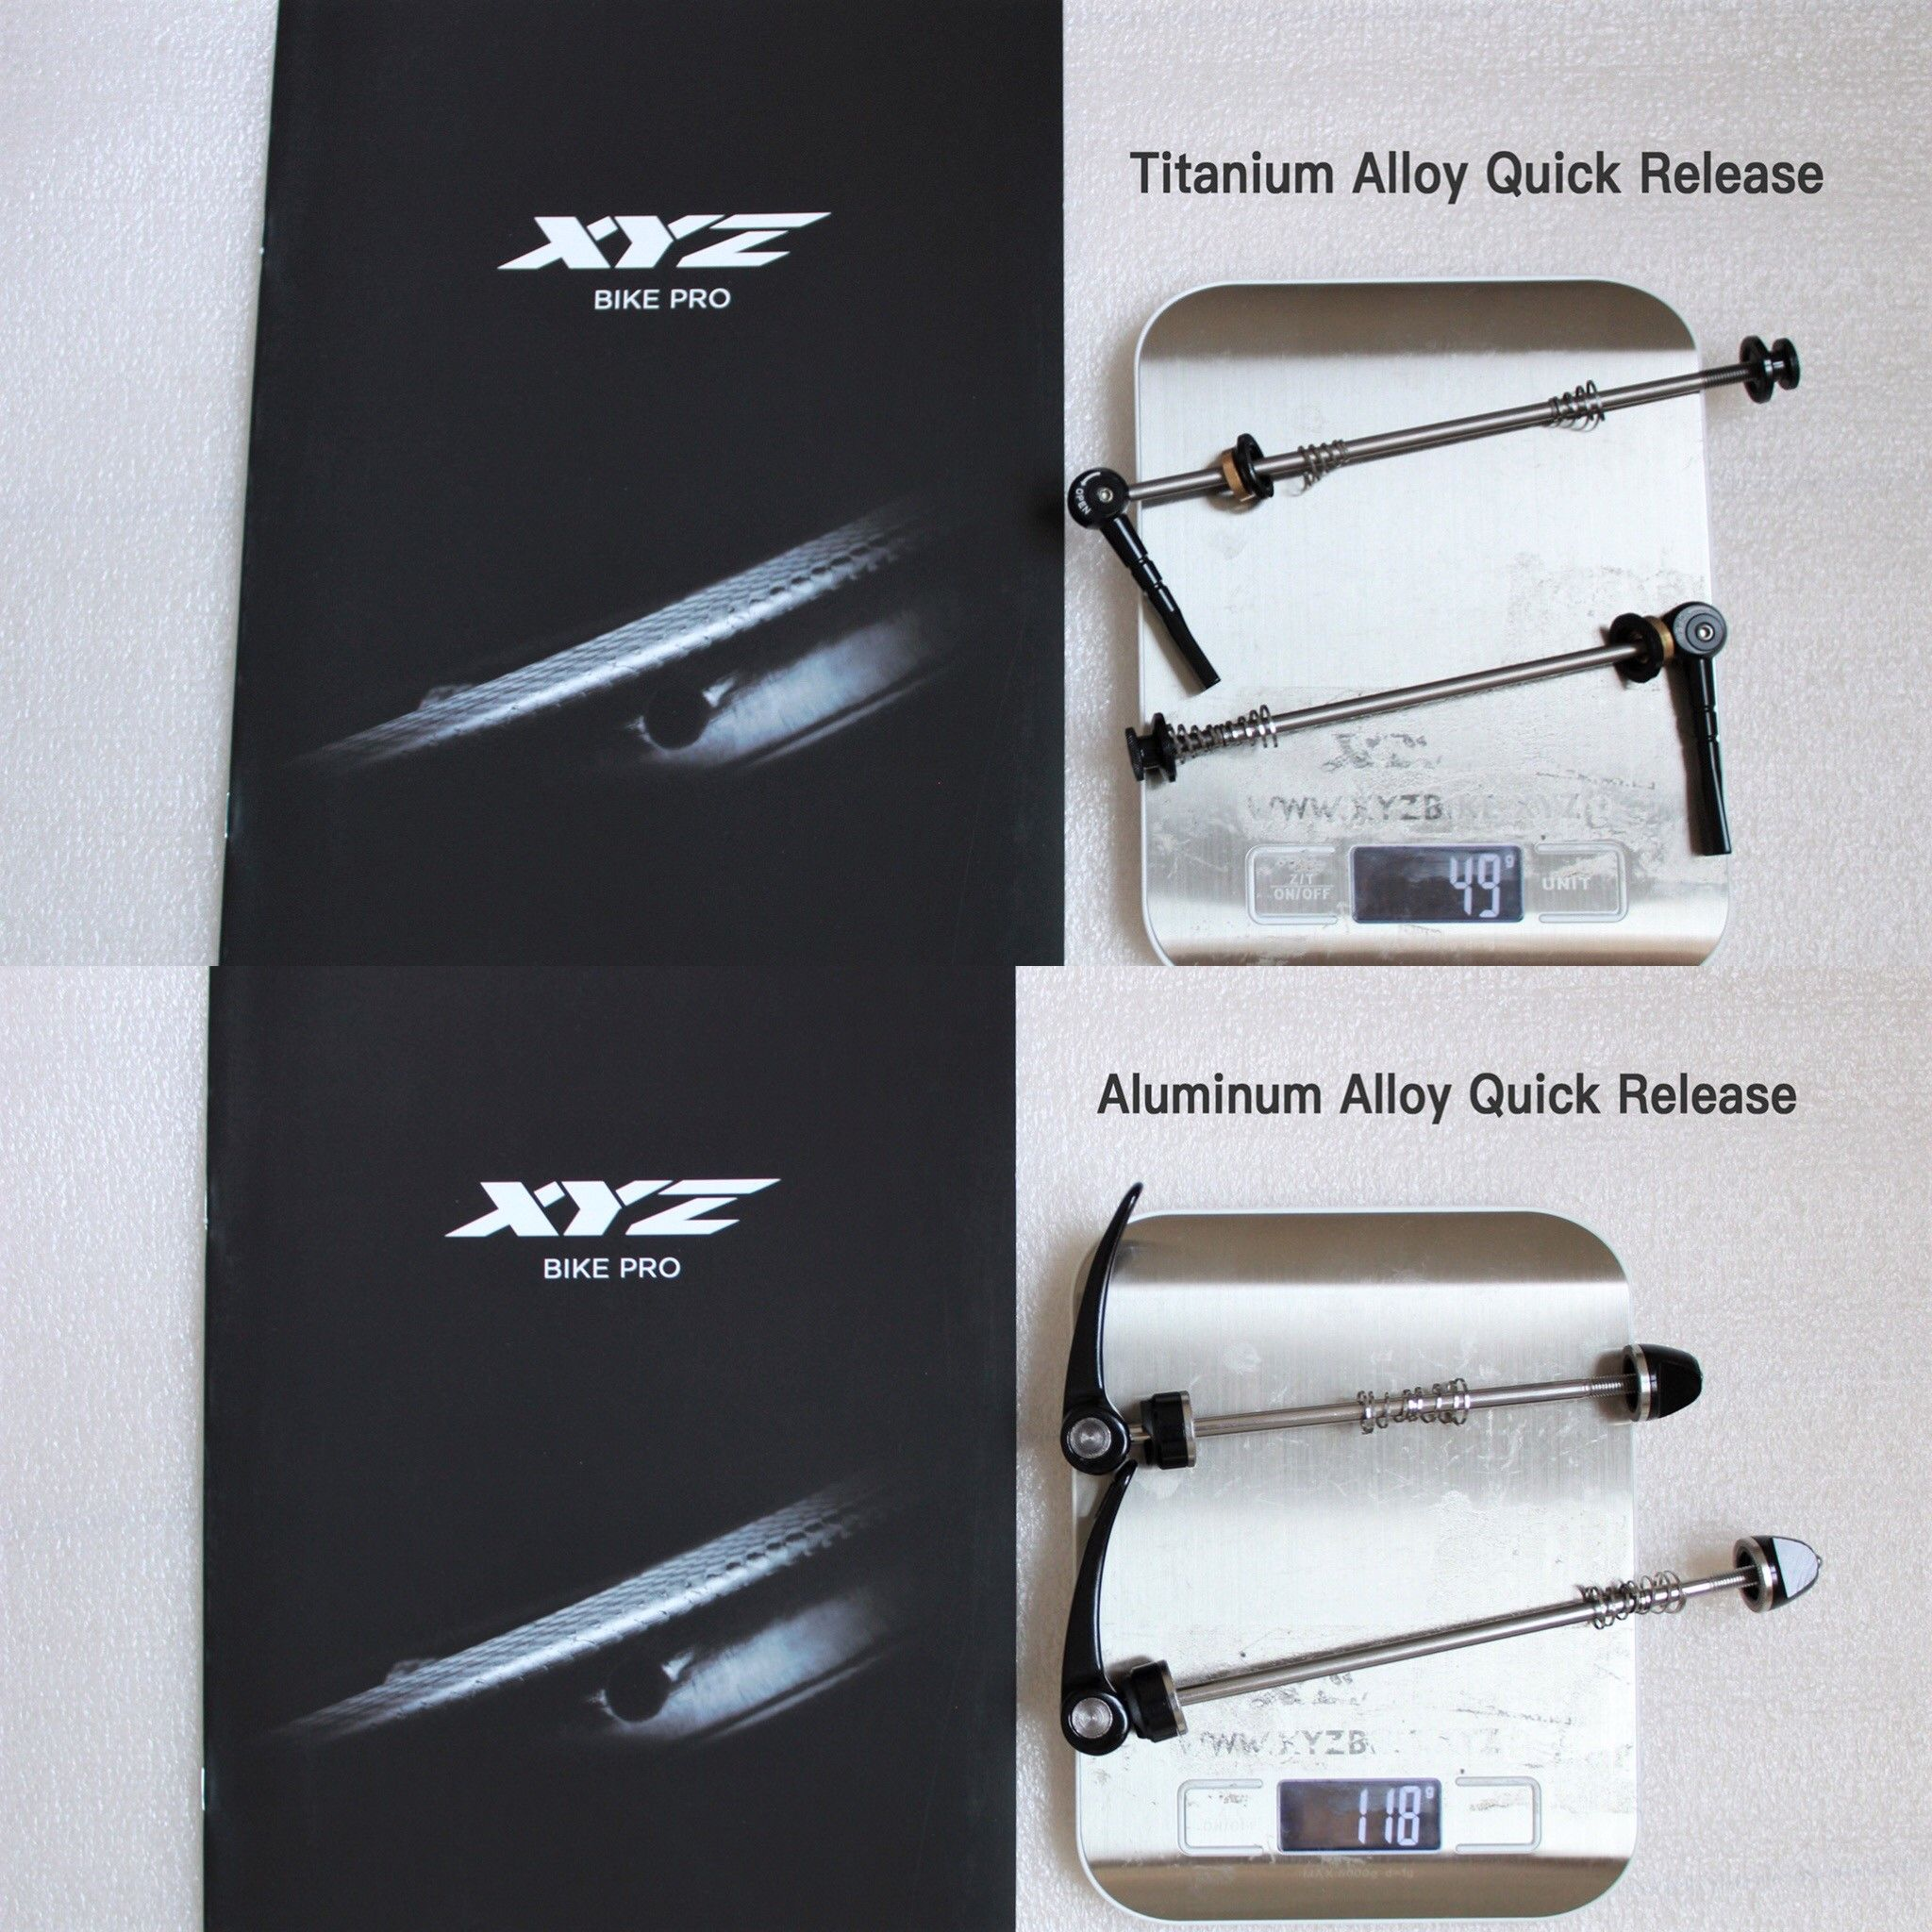 Our Specially Customized Titanium Alloy Quick Release Vs Aluminum